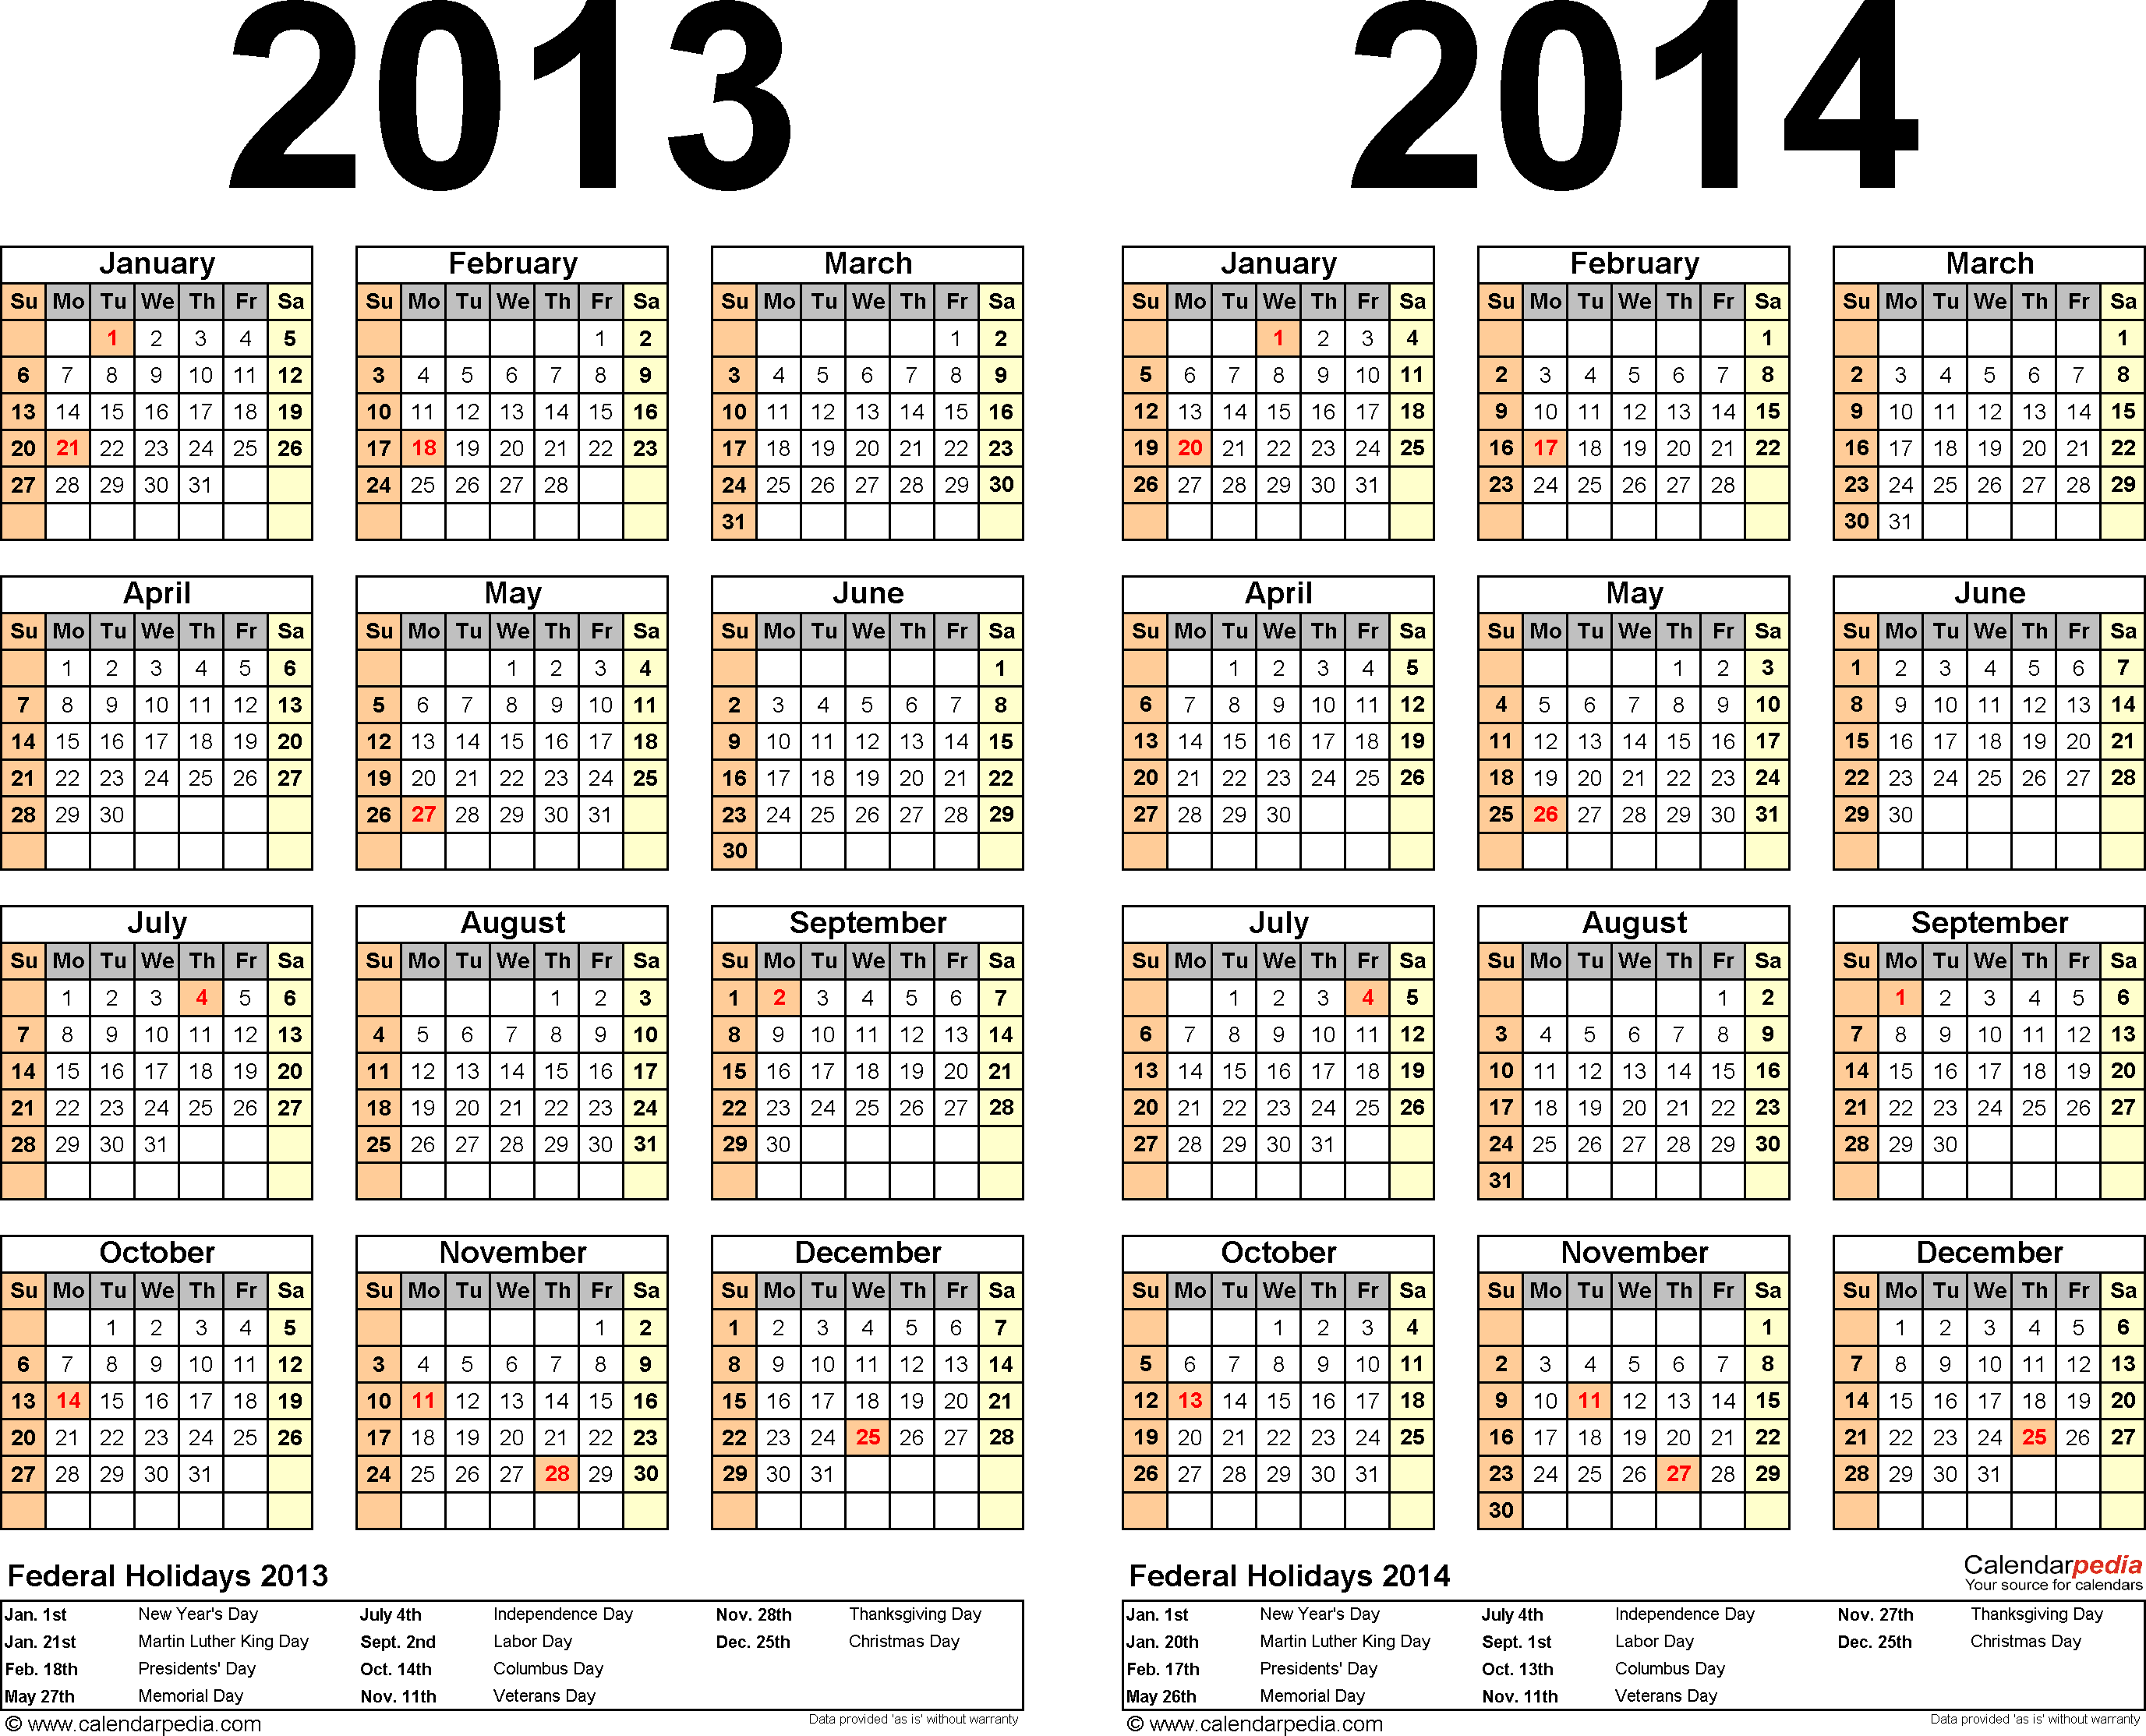 Template 2: Word template for two year calendar 2013/2014 (landscape orientation, 1 page)